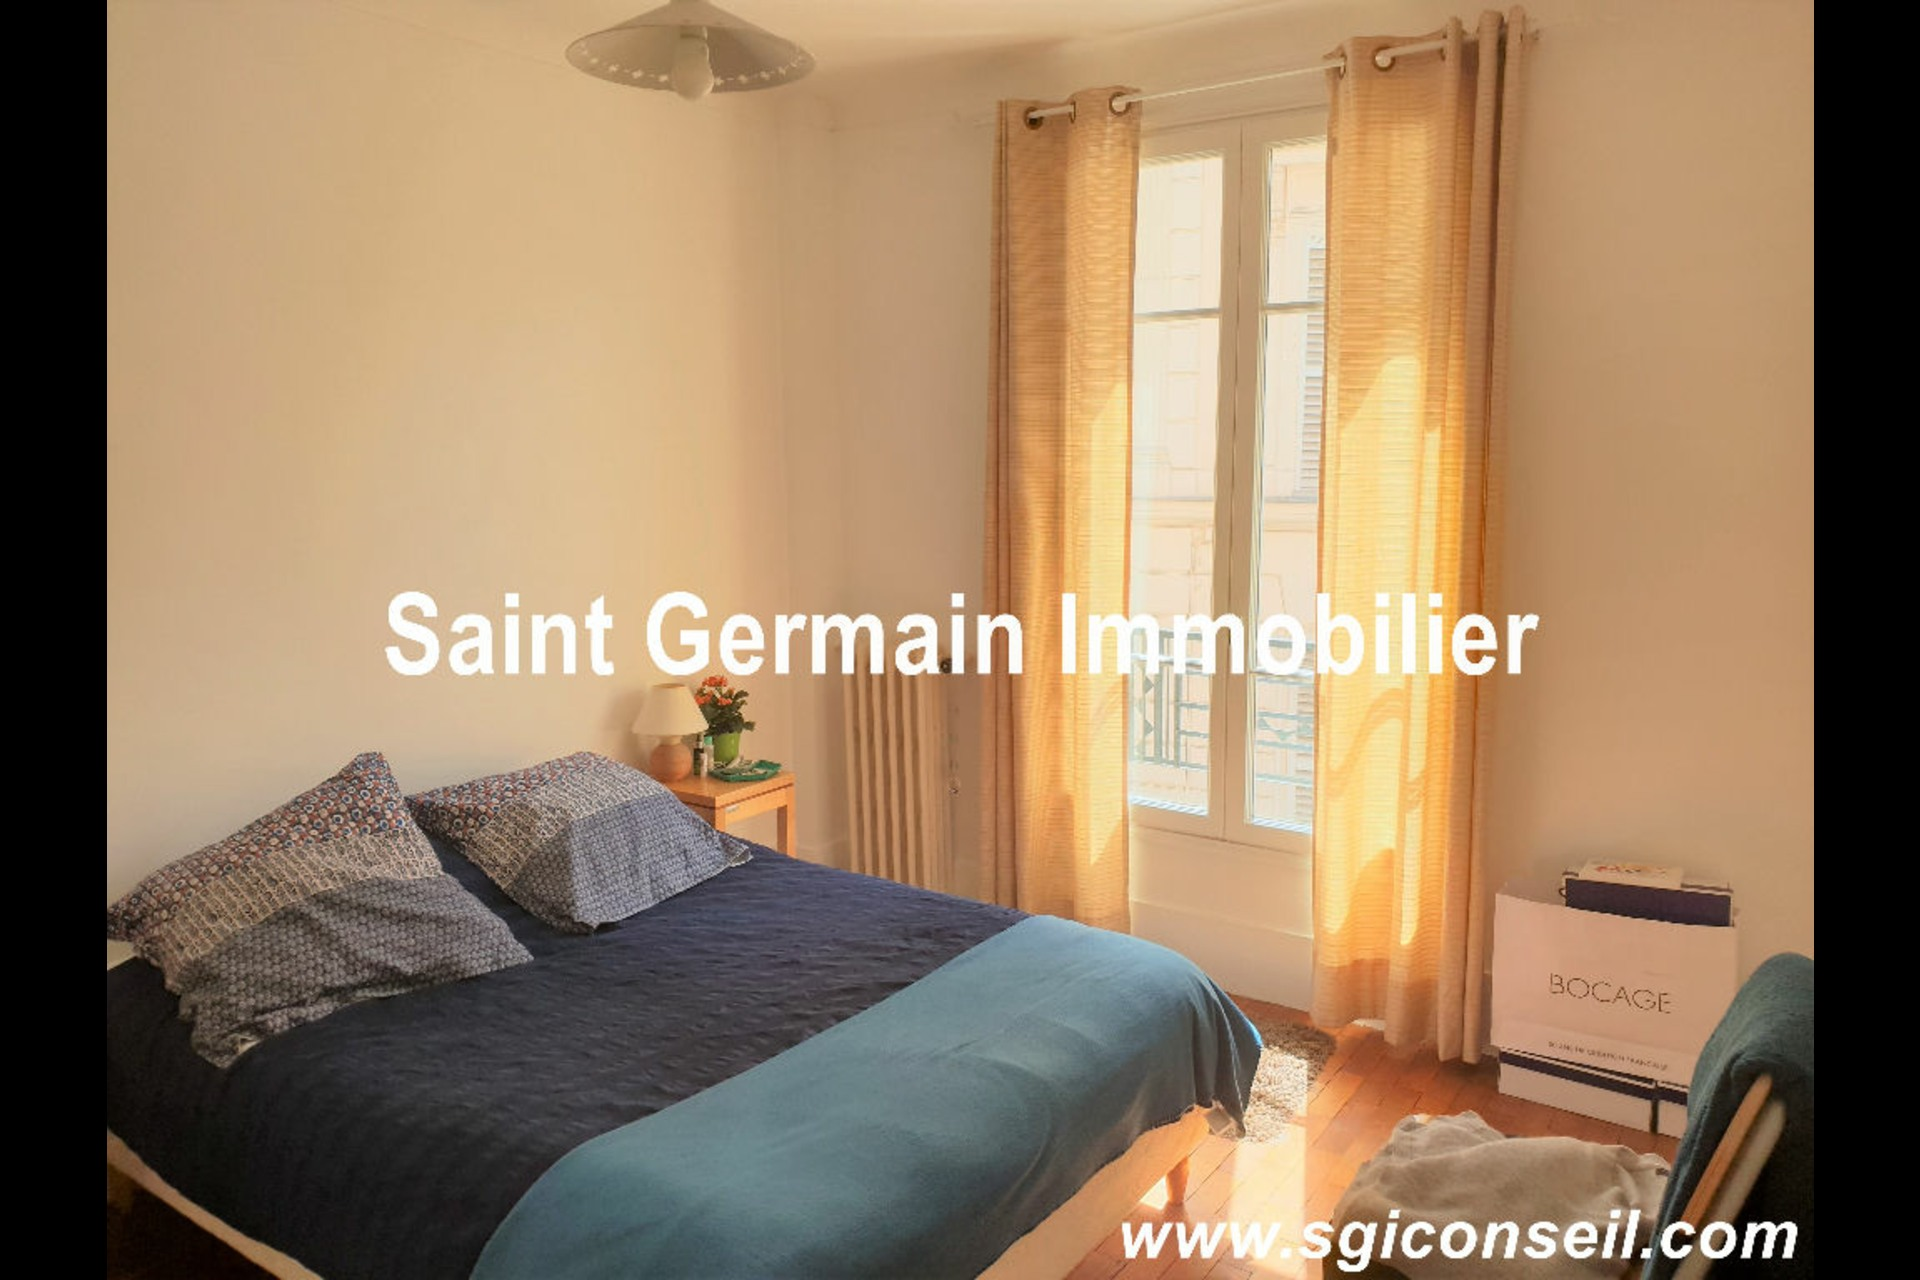 image 3 - Apartment For rent saint germain en laye - 2 rooms